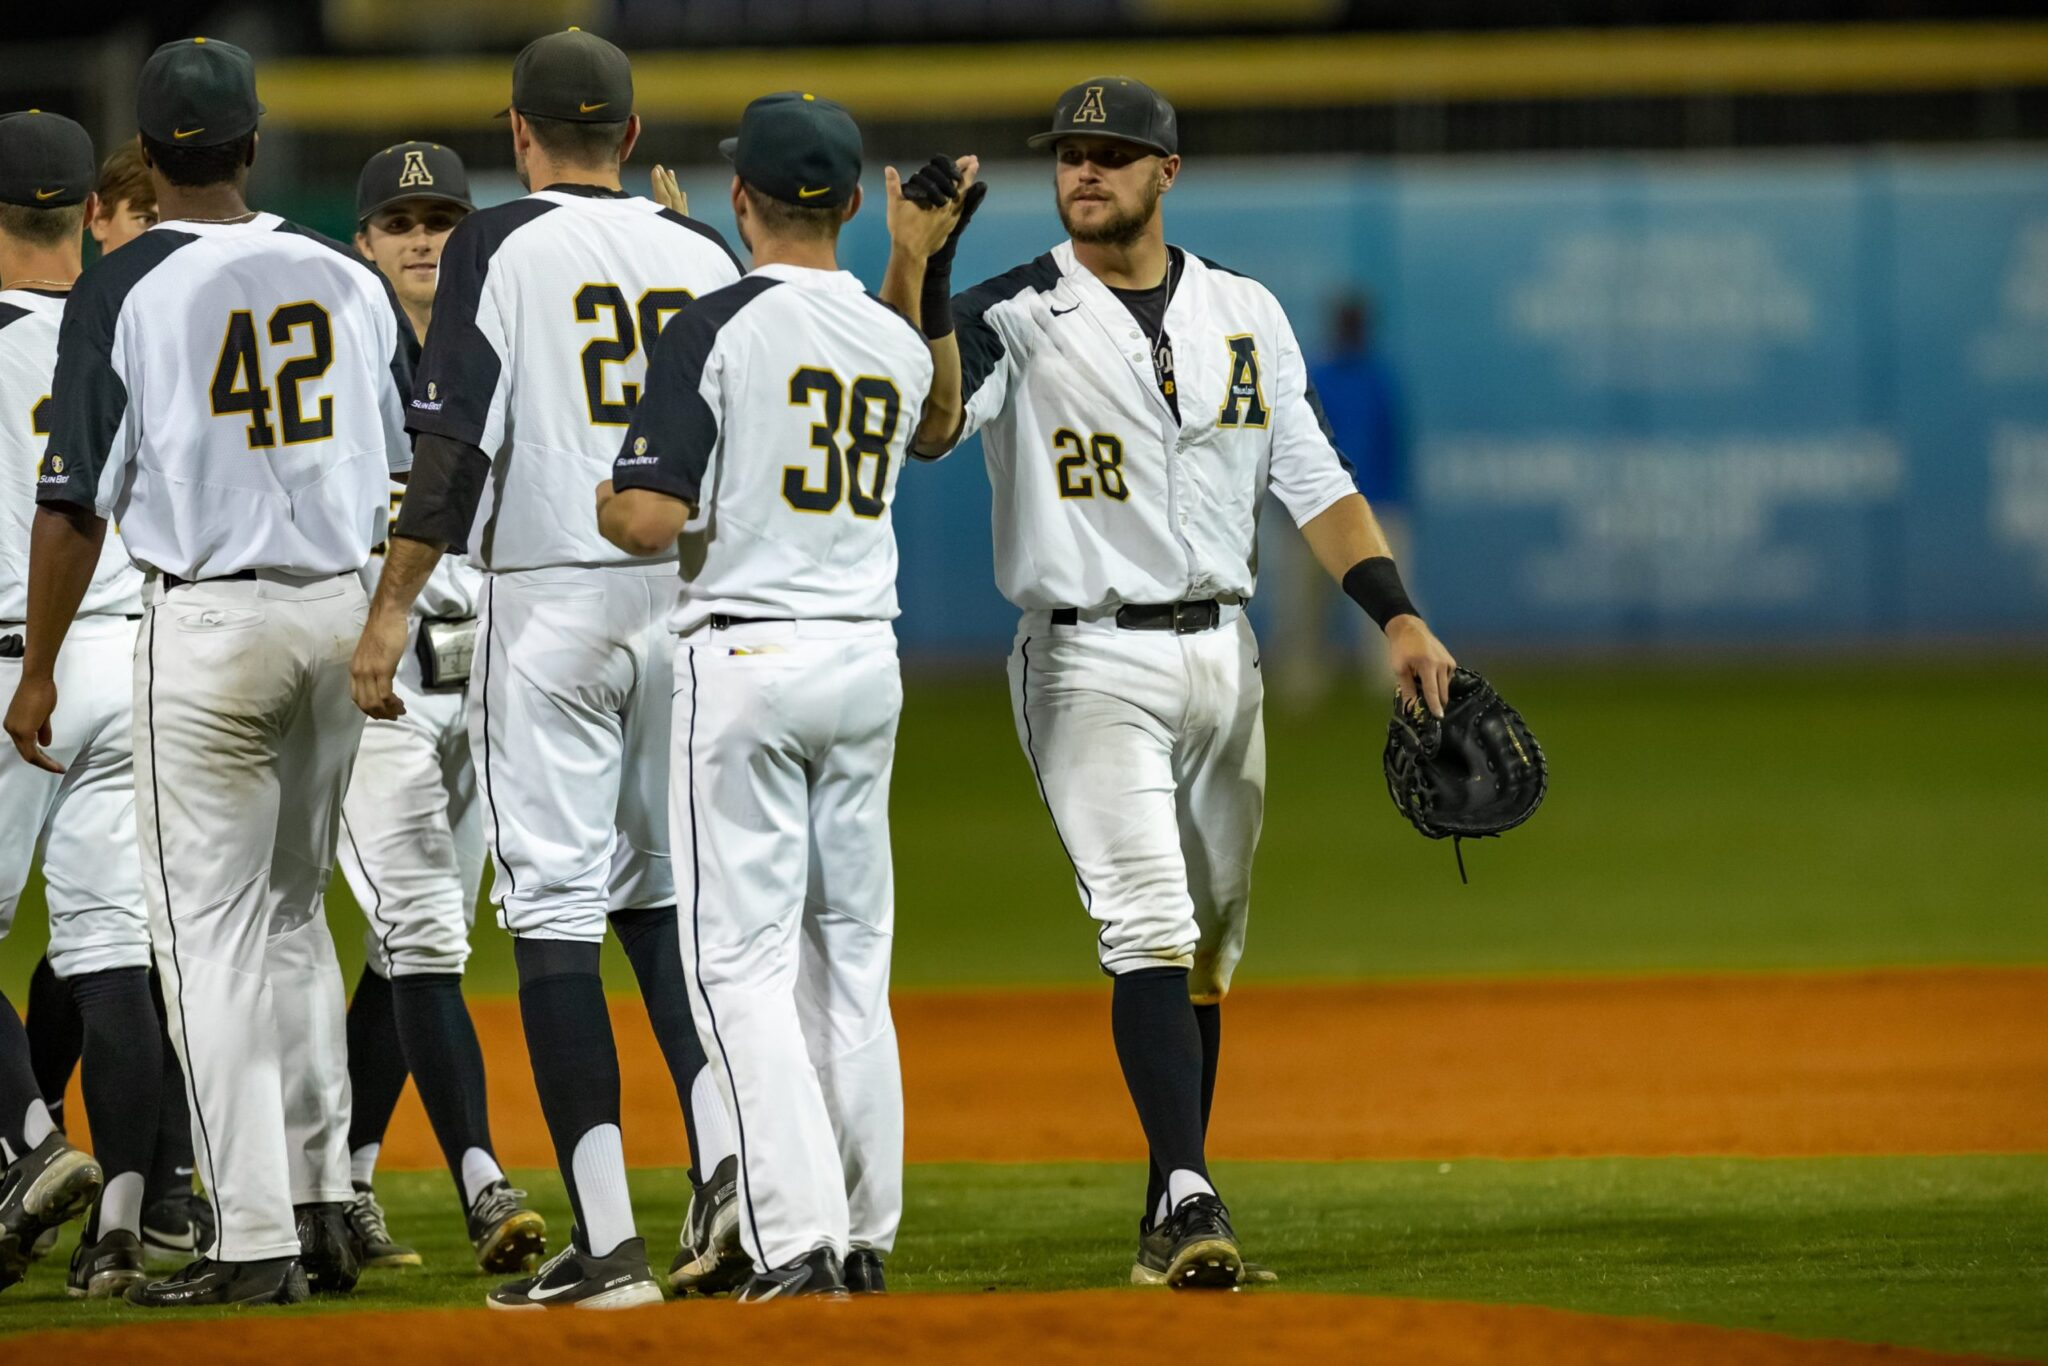 App State Makes History With 1-0 SBC Tourney Shutout